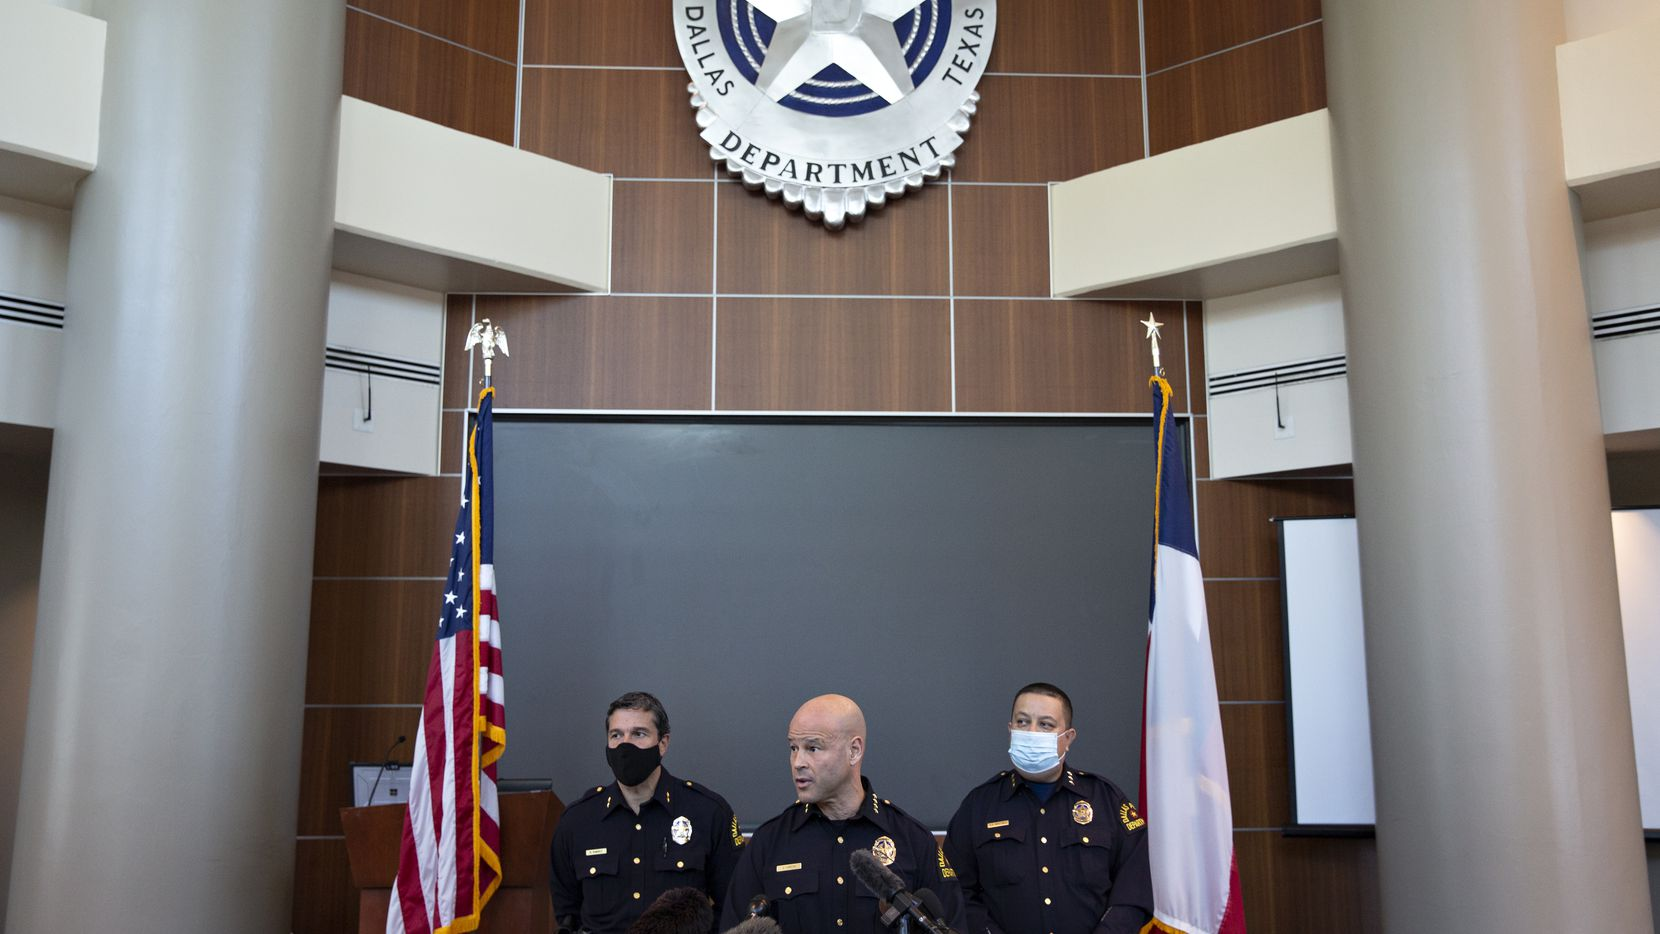 Dallas Police Chief Eddie Garcia speaks at a news conference to discuss information over the release of former Dallas police officer Bryan Riser at the Dallas Police Headquarters on April 8, 2021. (Shelby Tauber/Special Contributor)